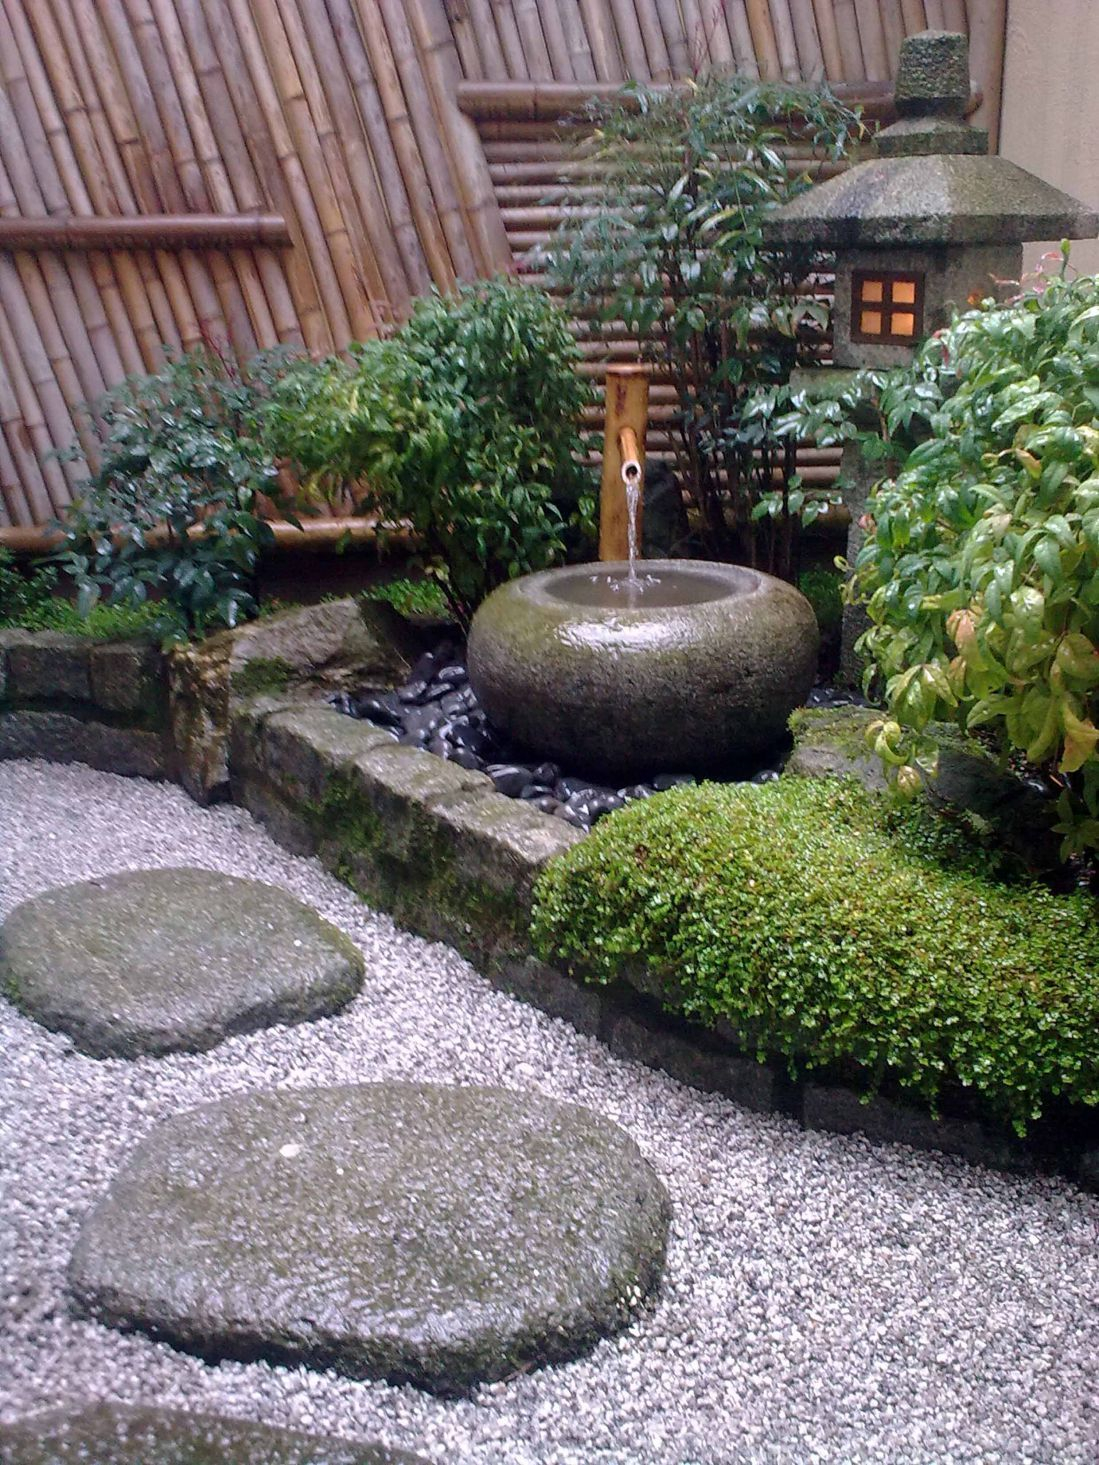 Top 10 Beautiful Zen Garden Ideas For Backyard Garden regarding Japanese Garden Ideas For Backyard